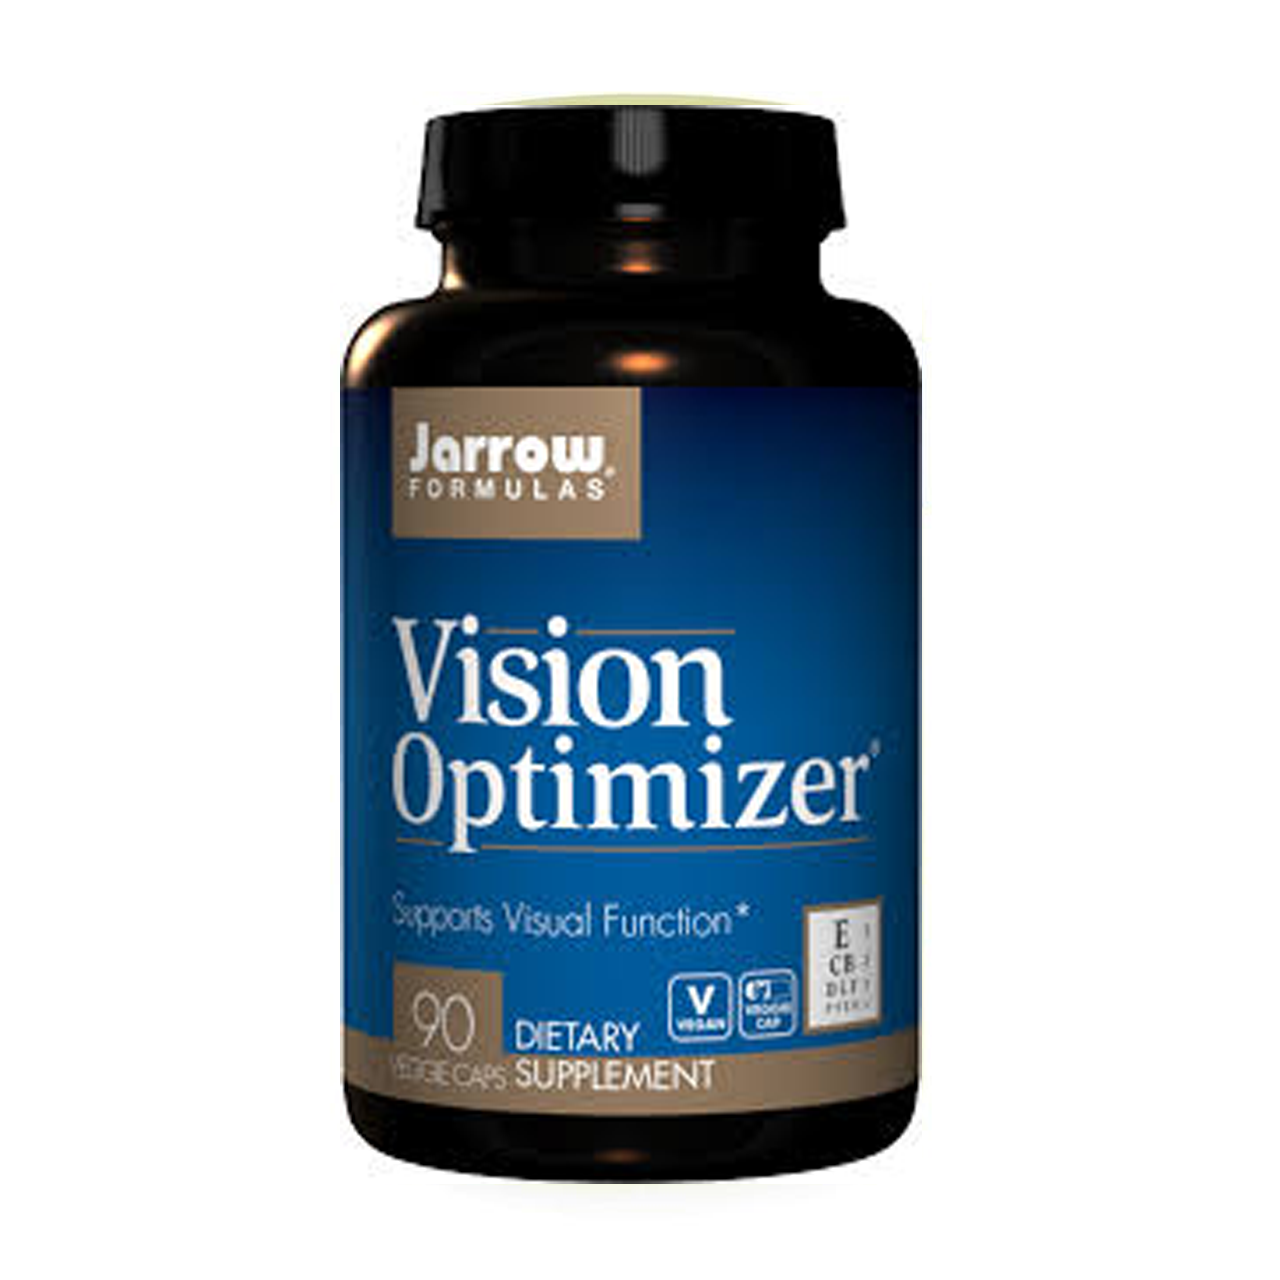 VISION OPTIMIZER (180 CAPS)